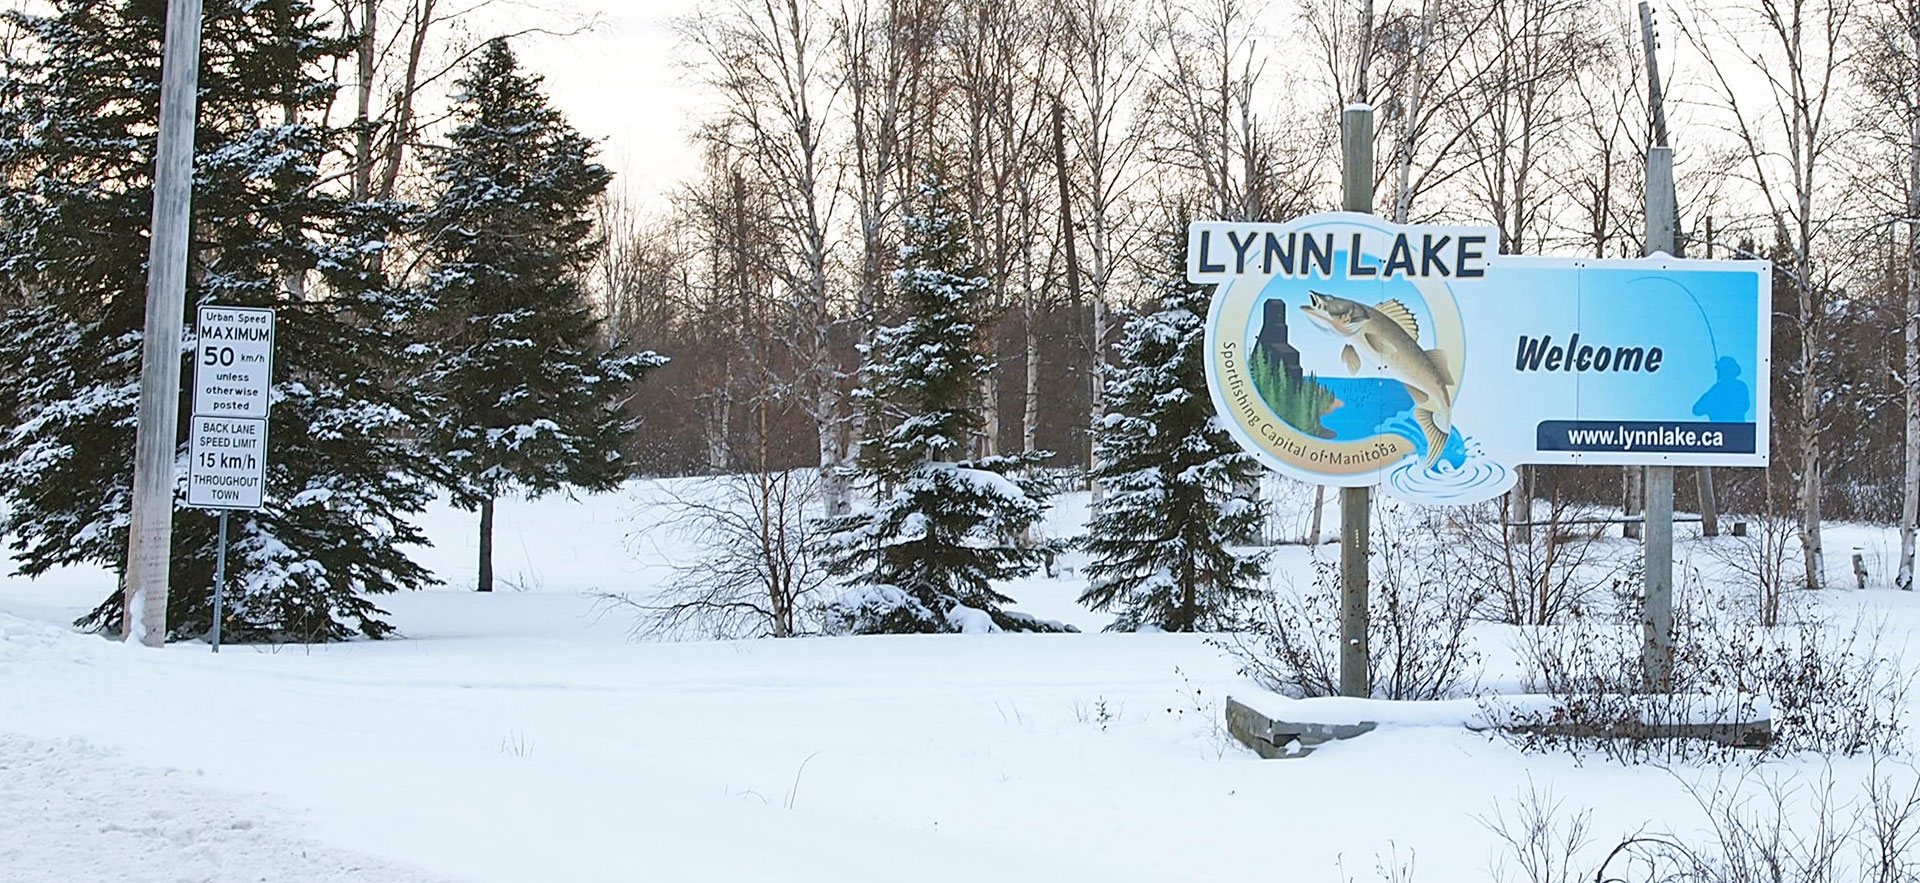 Welcome to Lynn Lake